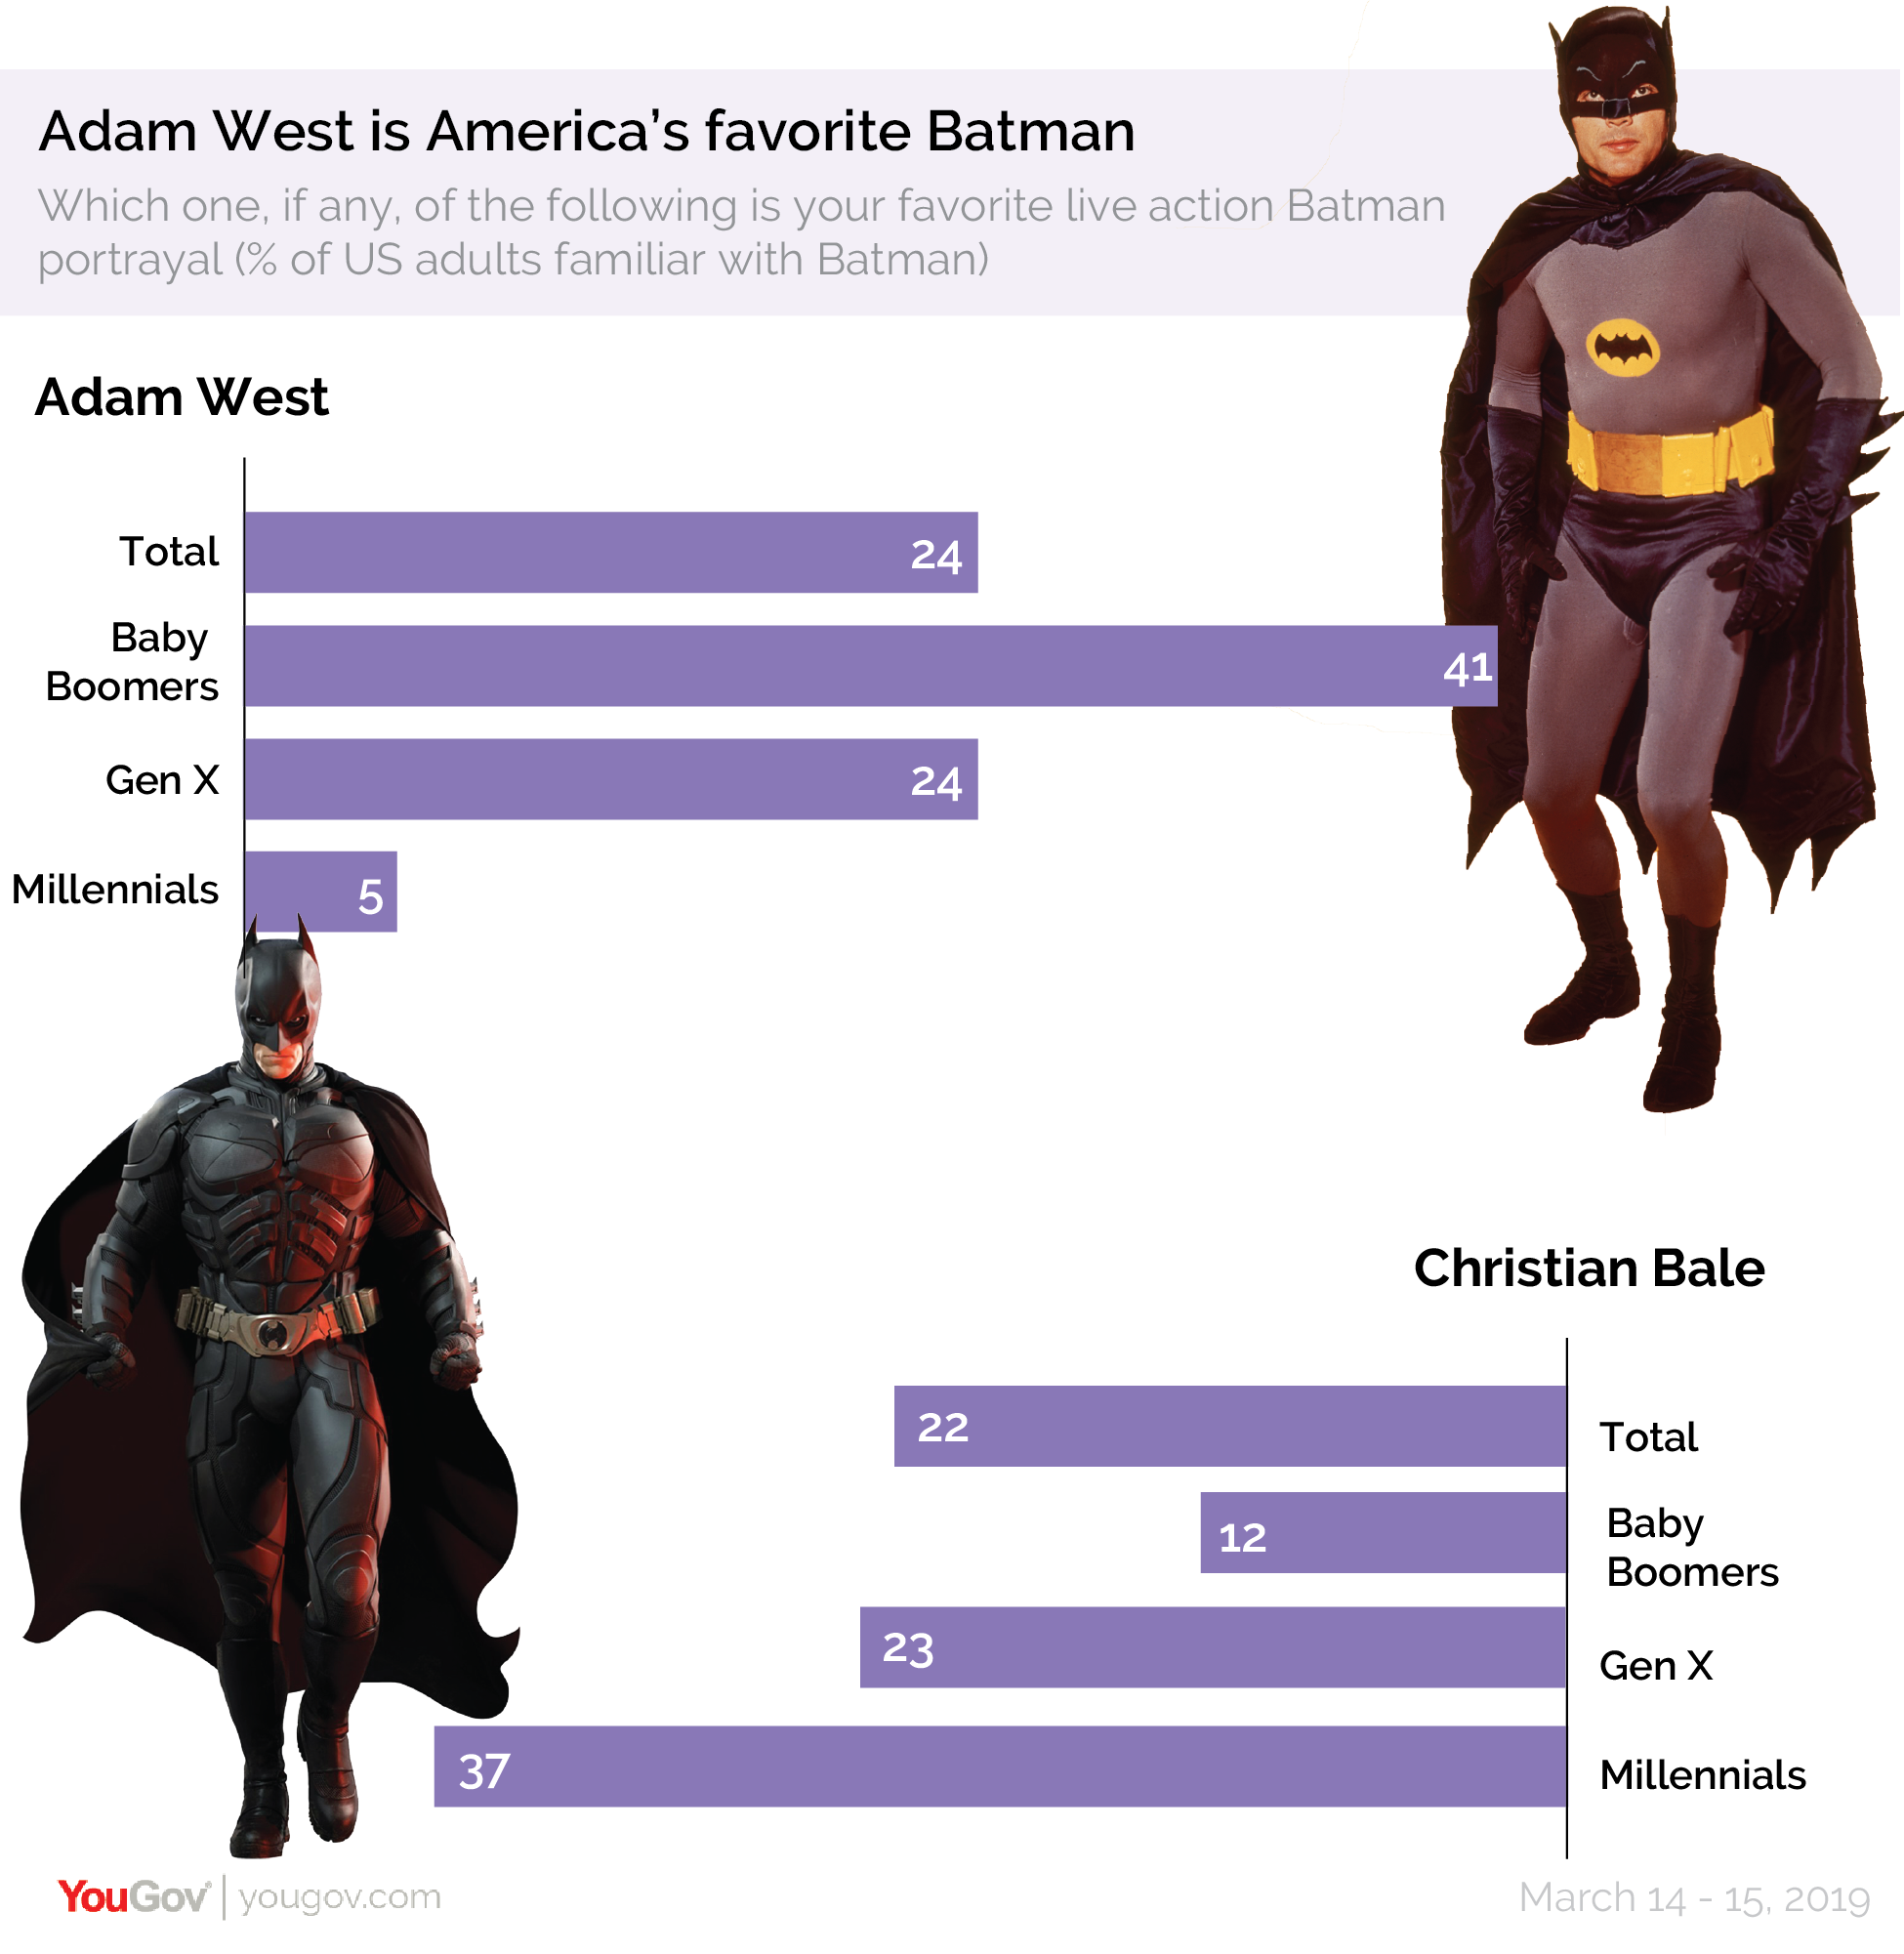 Adam West is America's favorite Batman